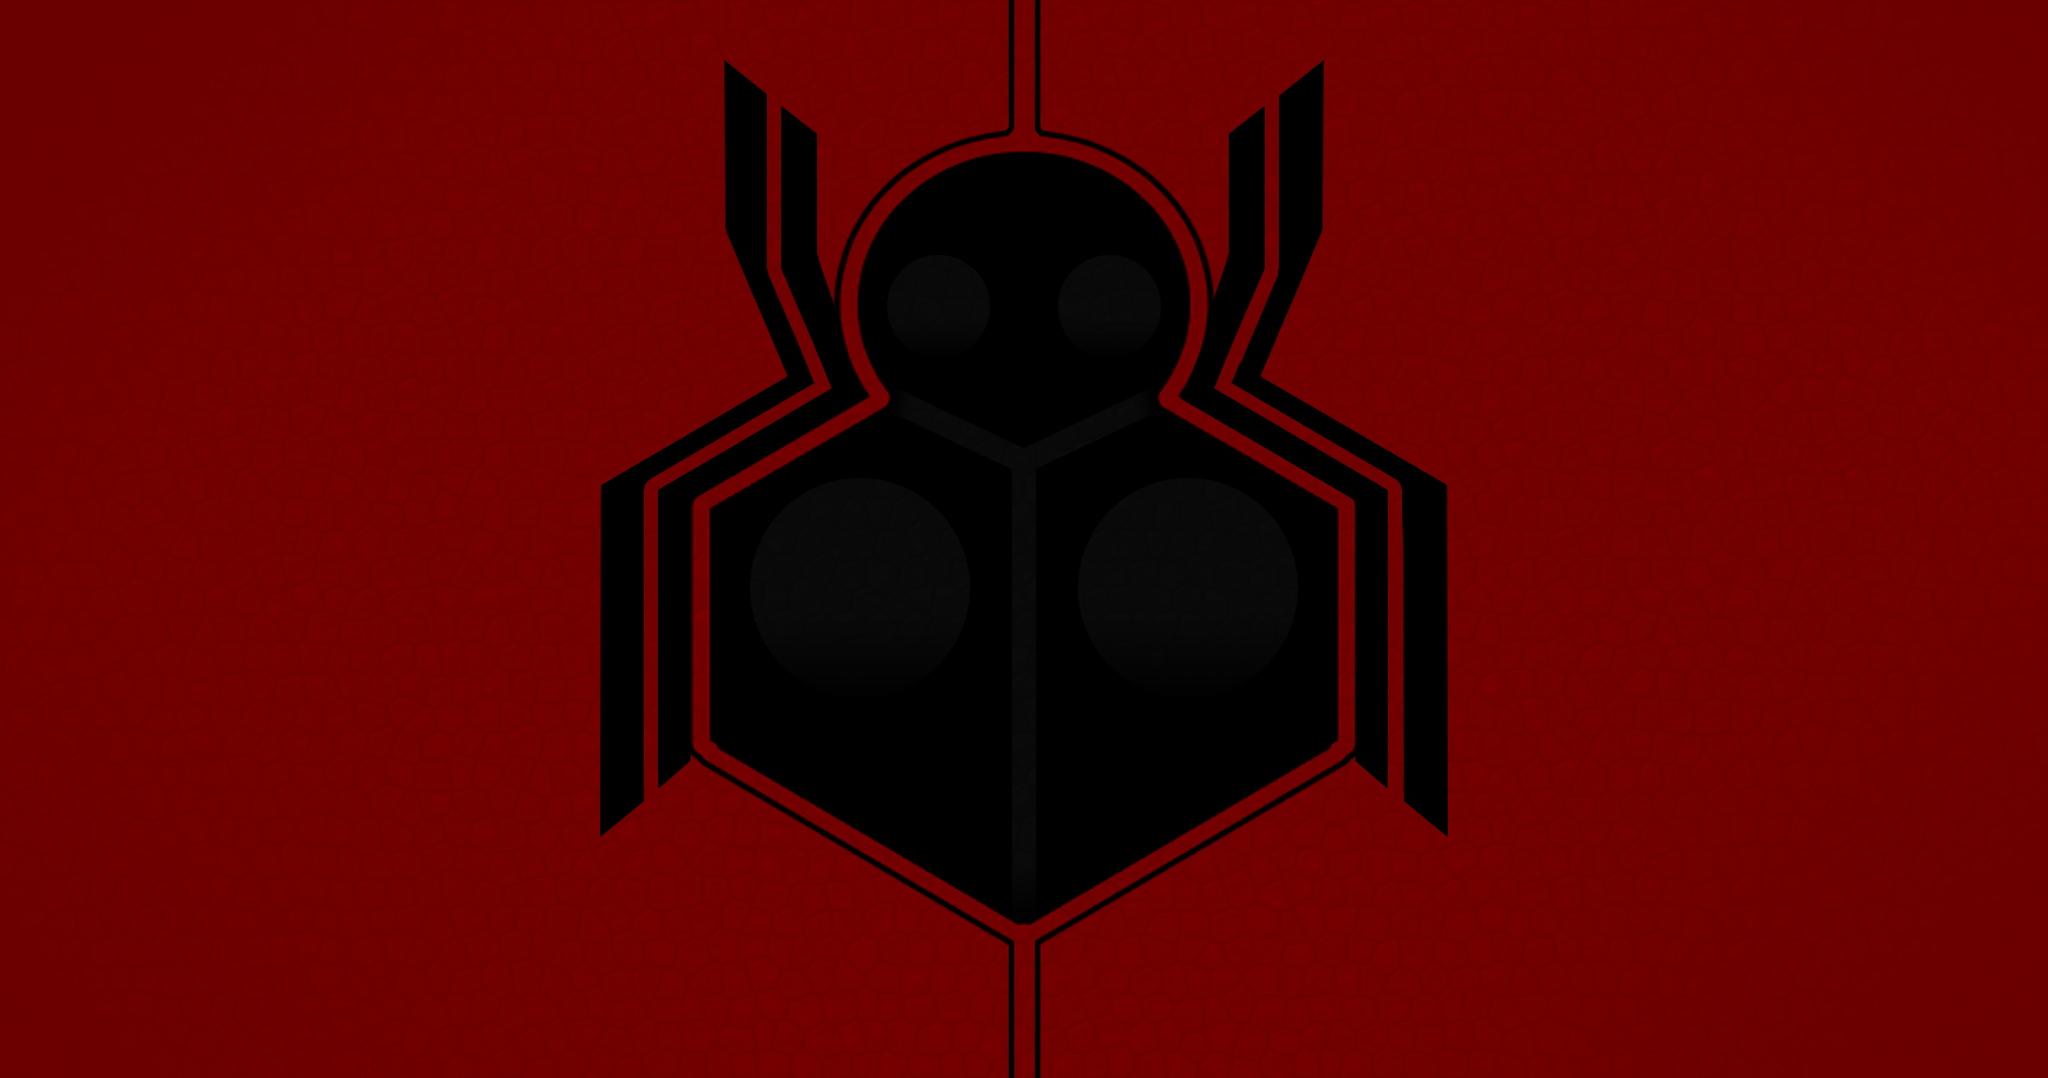 Tom Holland's Spider-Man Symbol by hydrate3